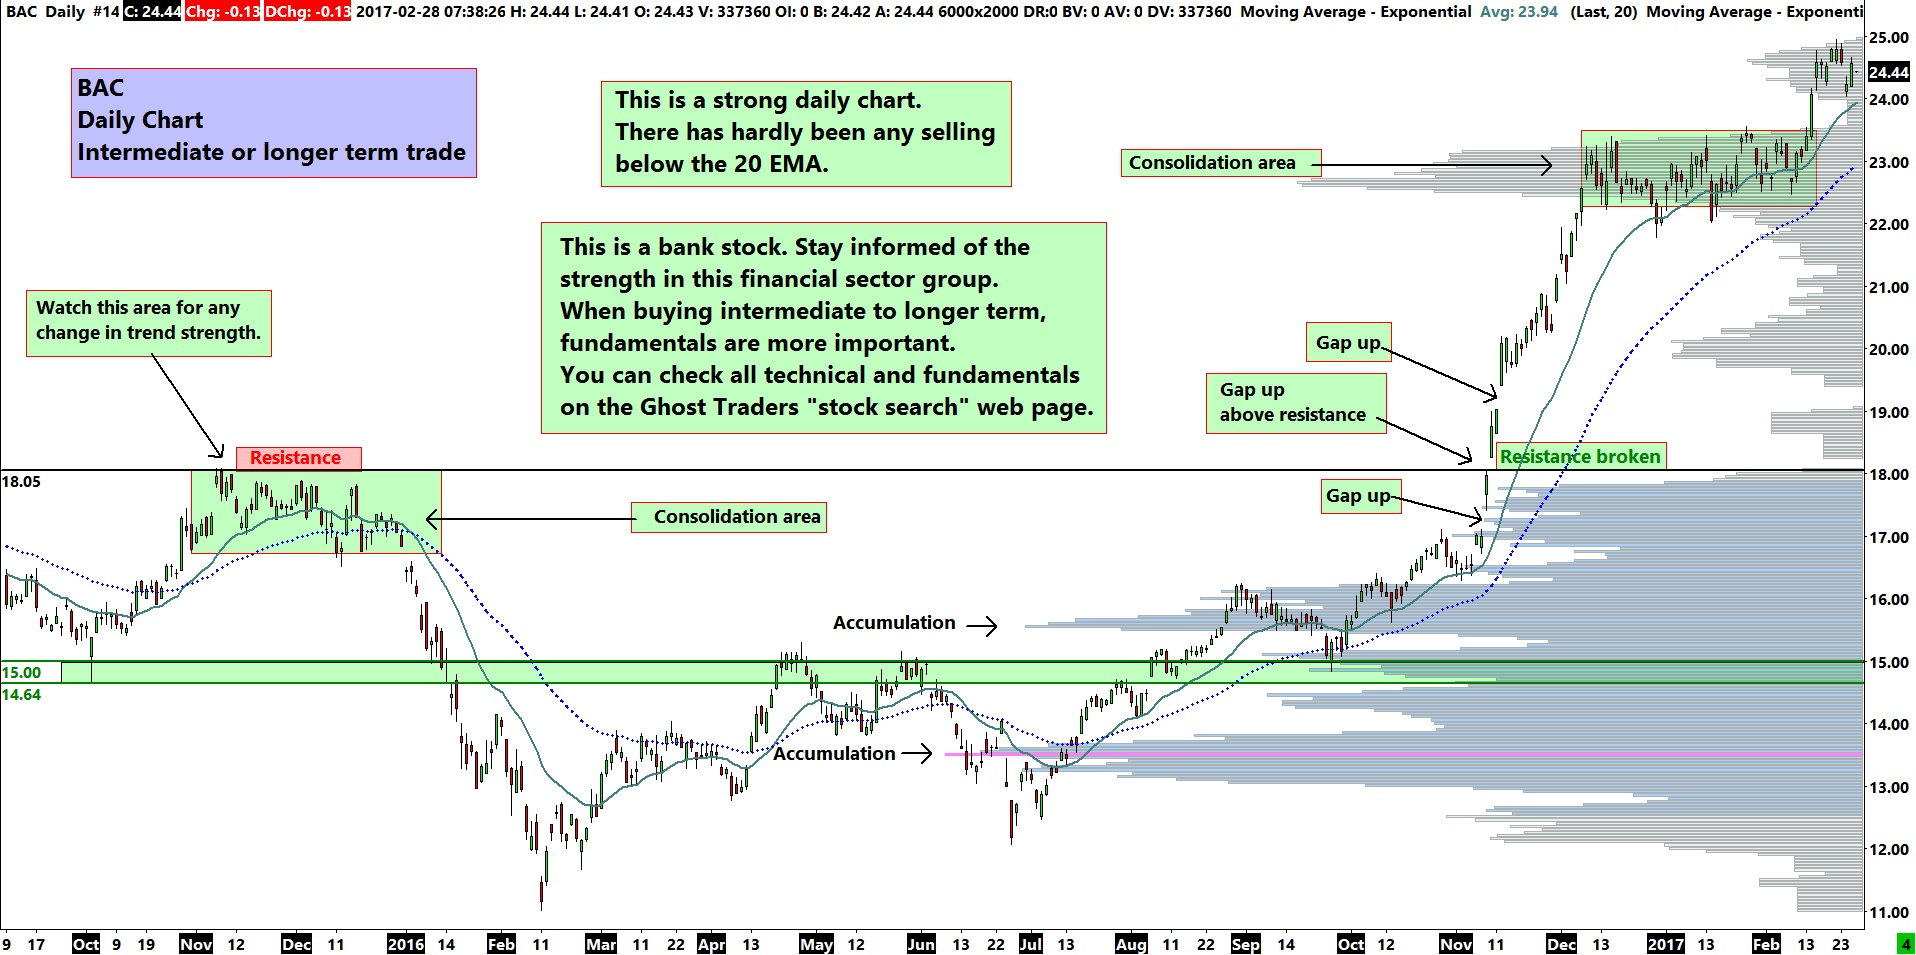 BAC Daily Chart - Intermediate to Longer Term Trade